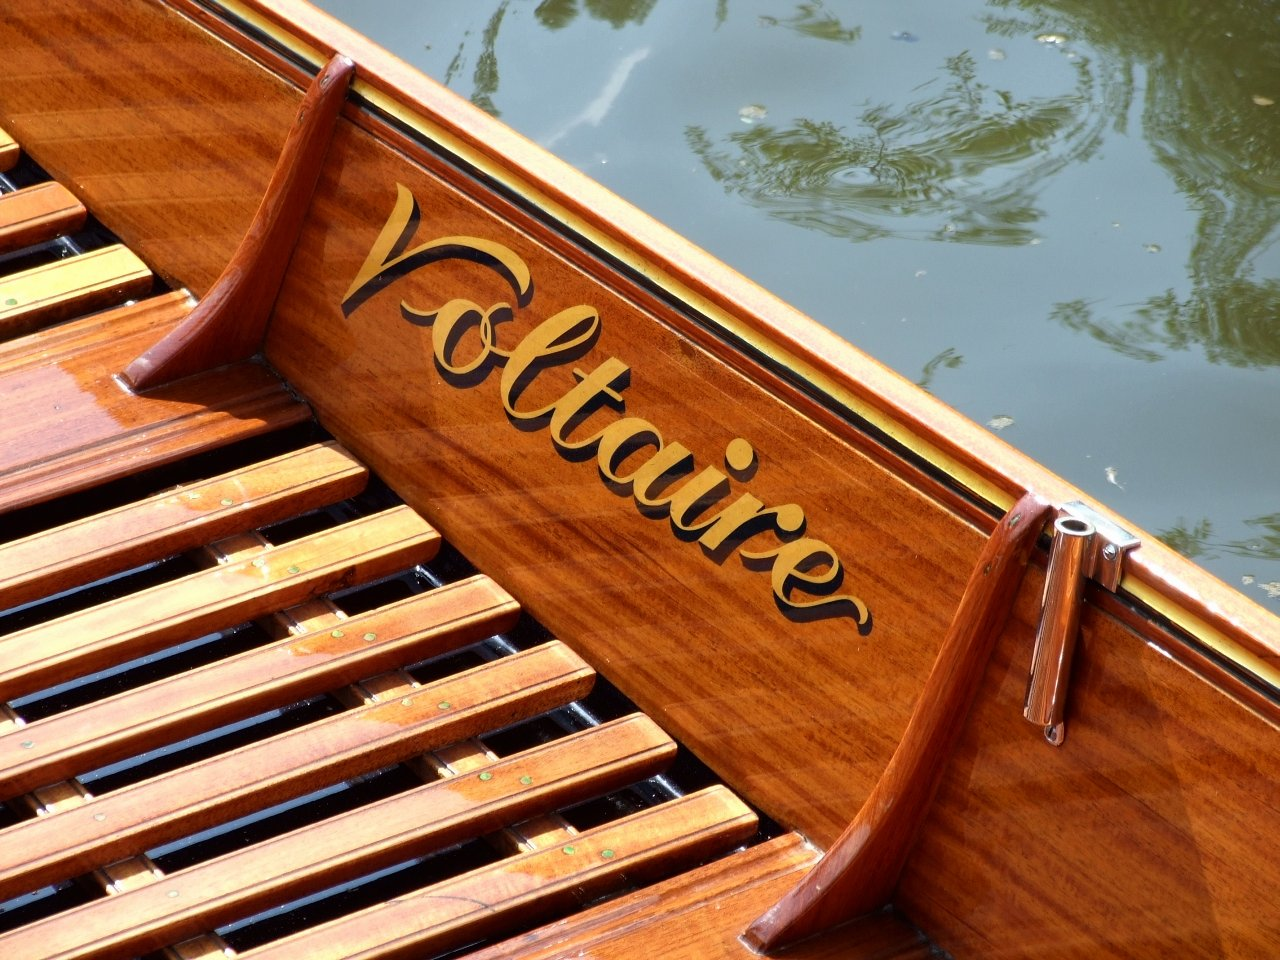 Electric punt Voltaire at the Beale Park Thames Boat Show – intheboatshed.net